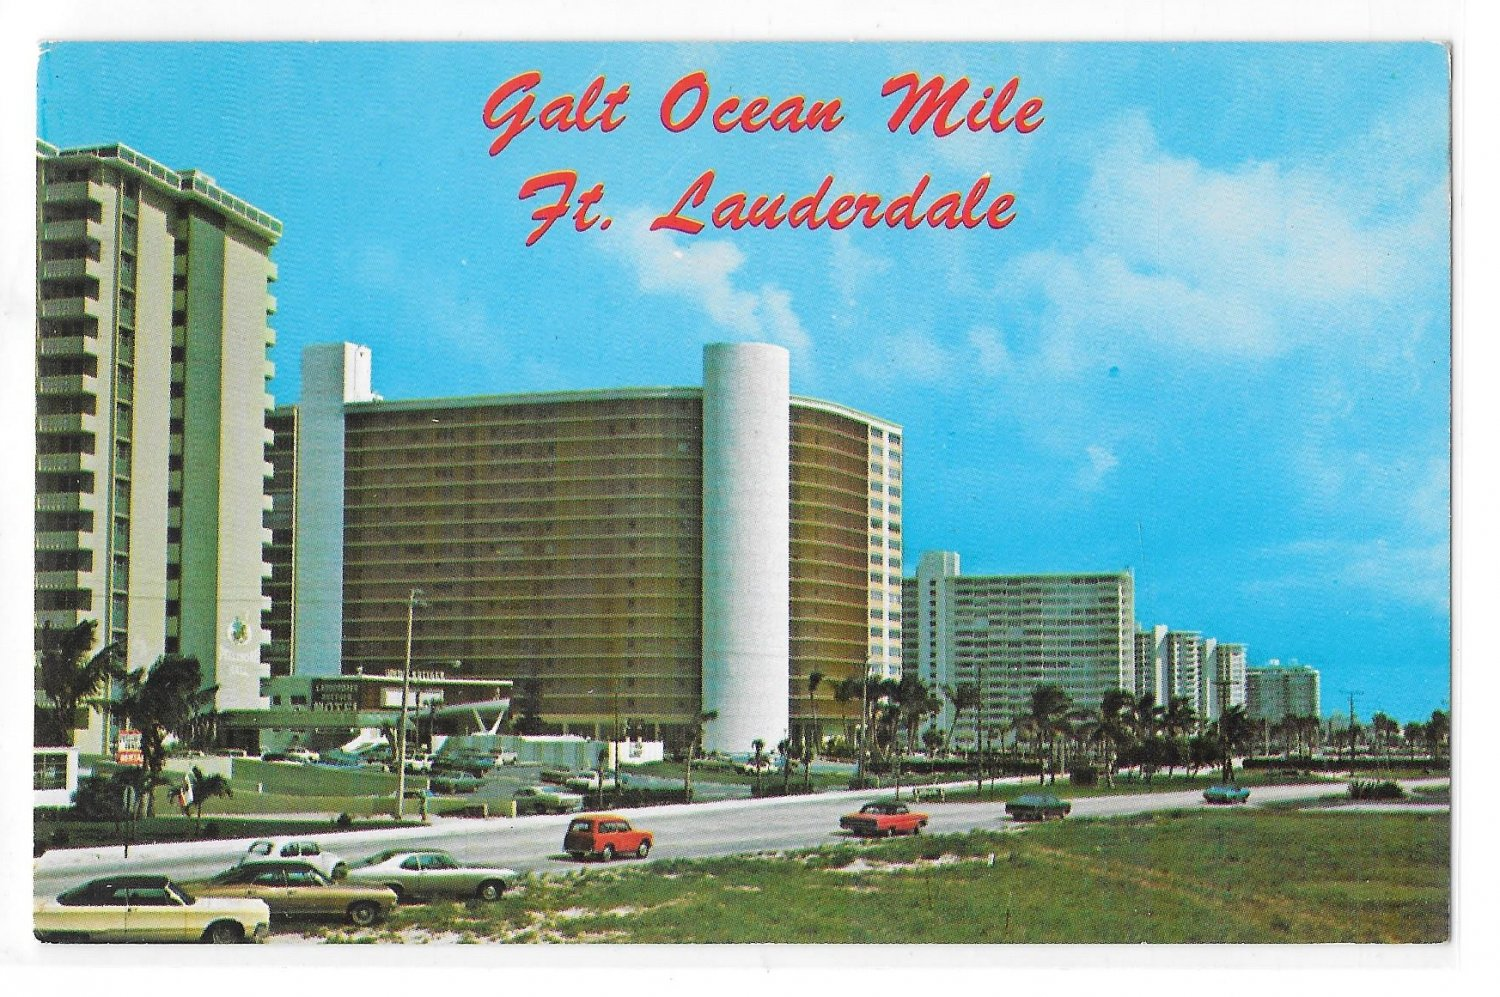 FFL Fort Lauderdale Galt Ocean Mile Panorama Oceanfront Luxury Hotels 1968 Postcard